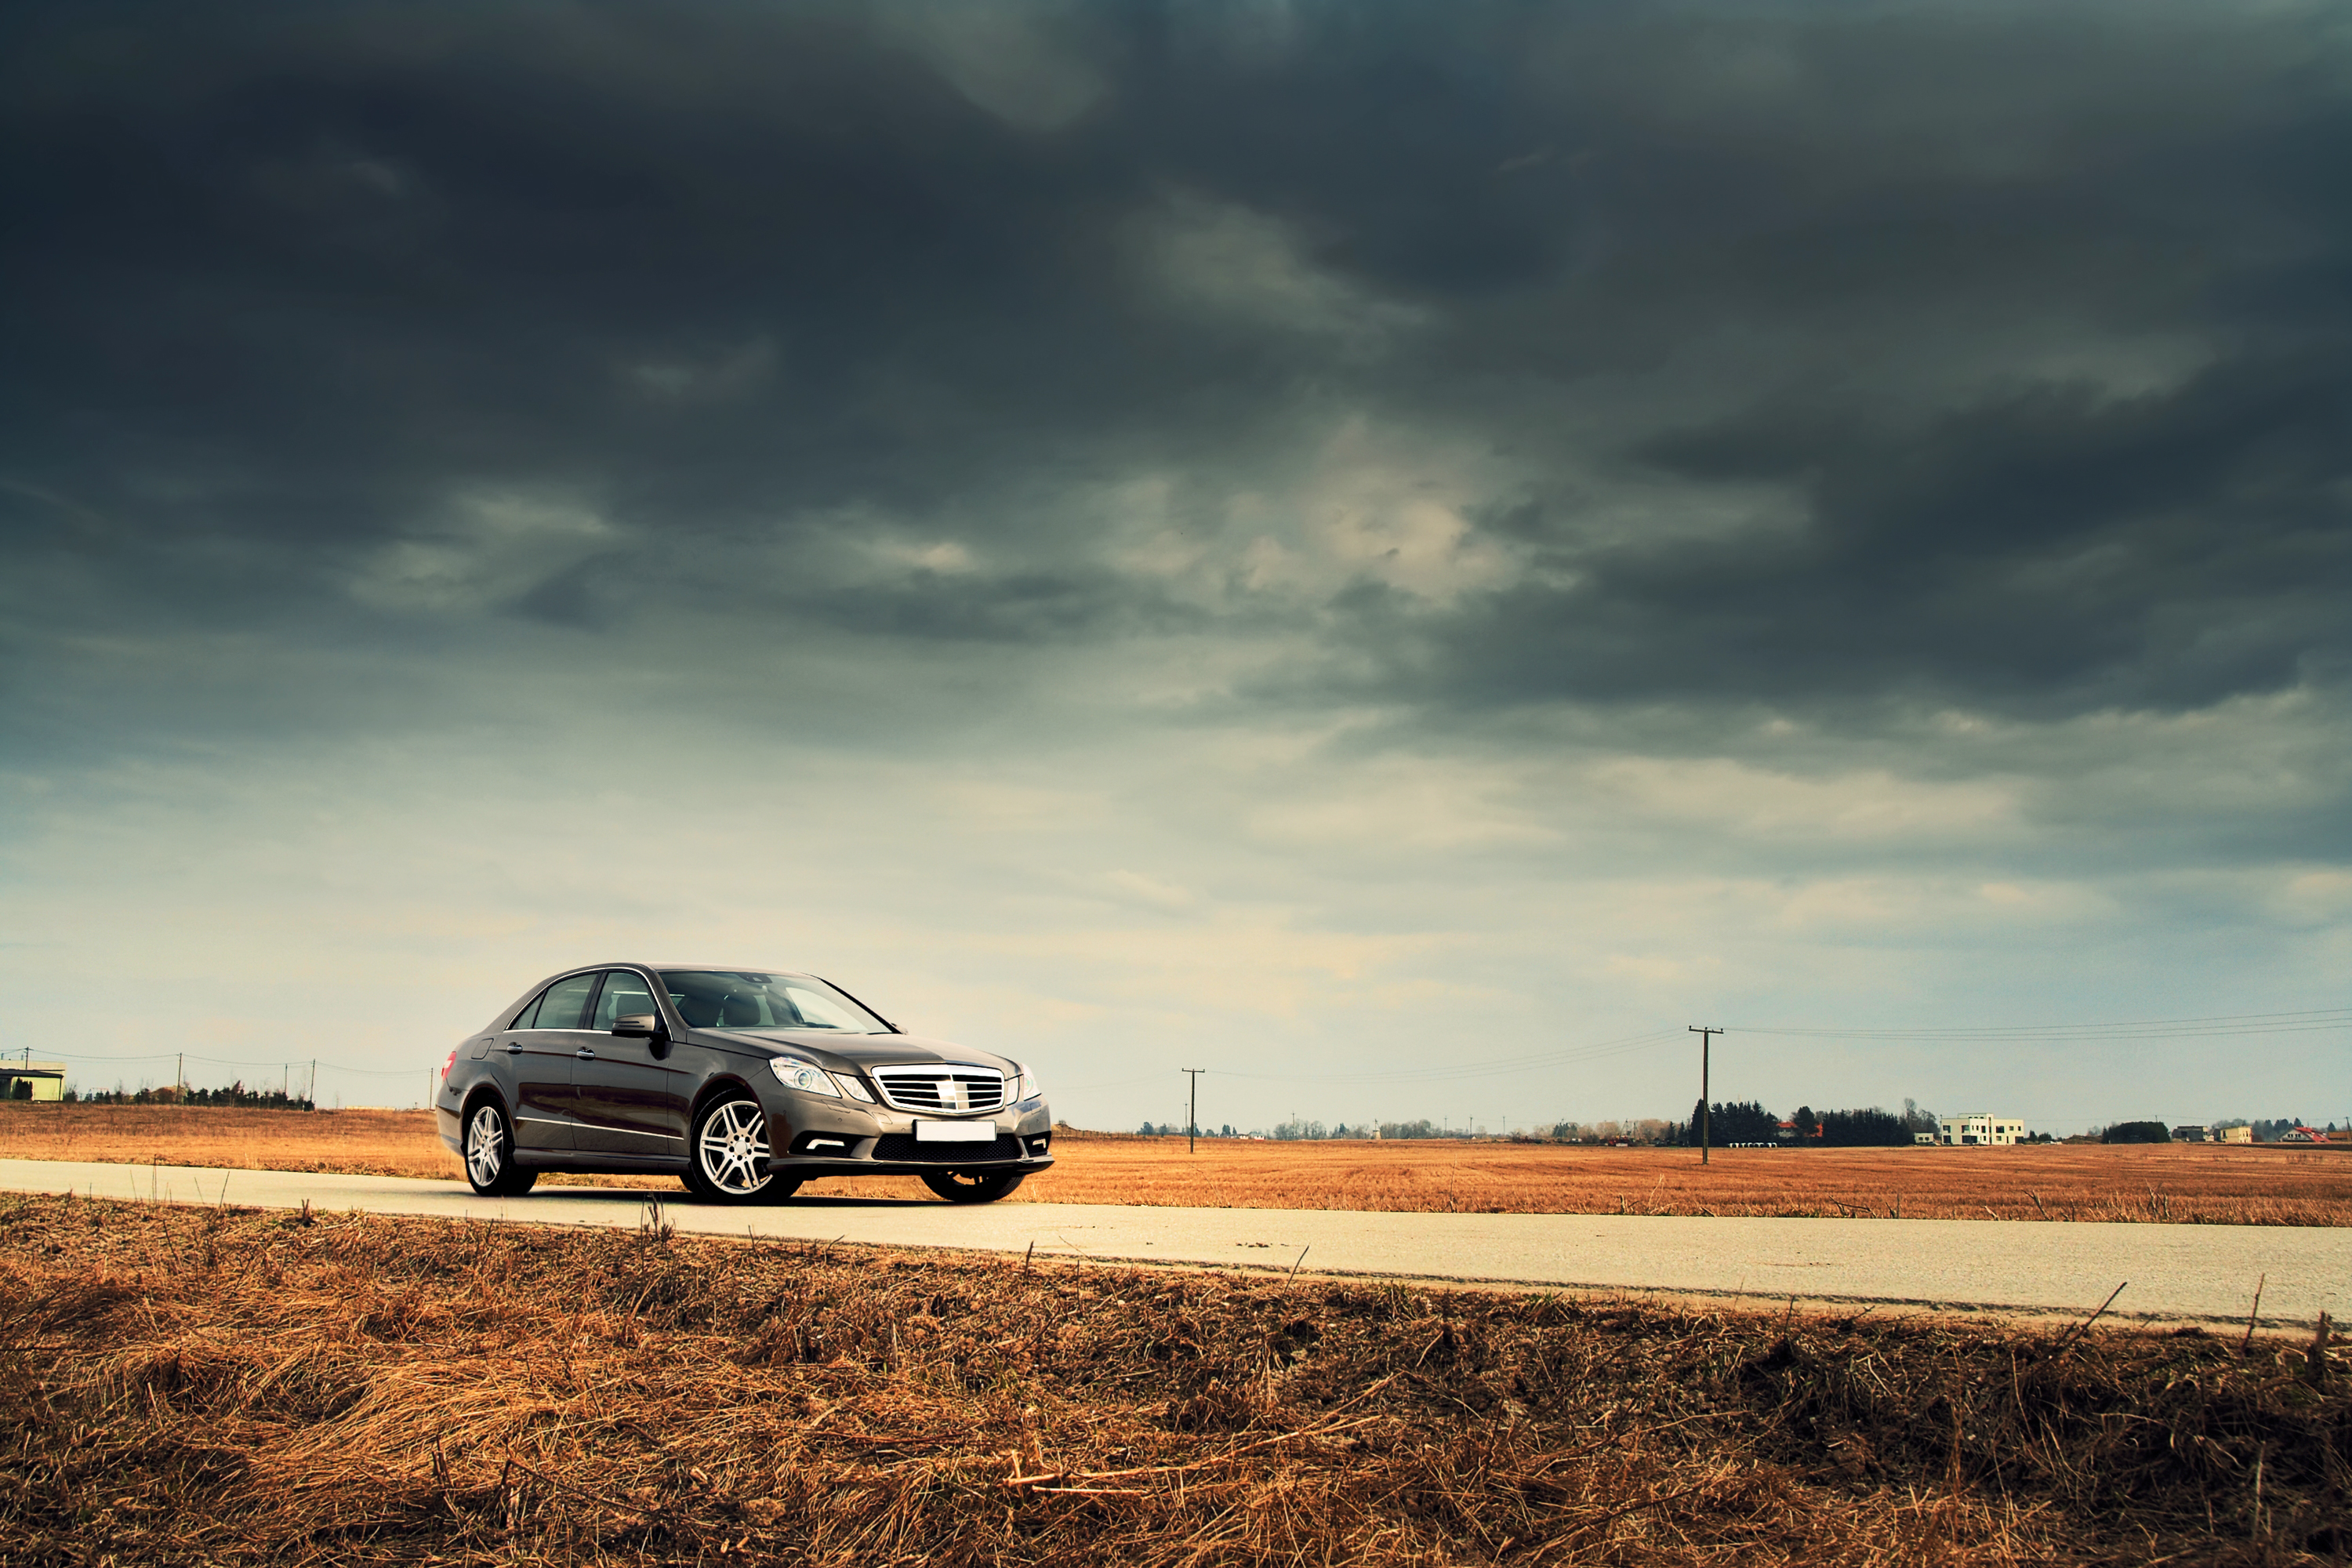 Sedan-on-country-road-with-dramatic-sky